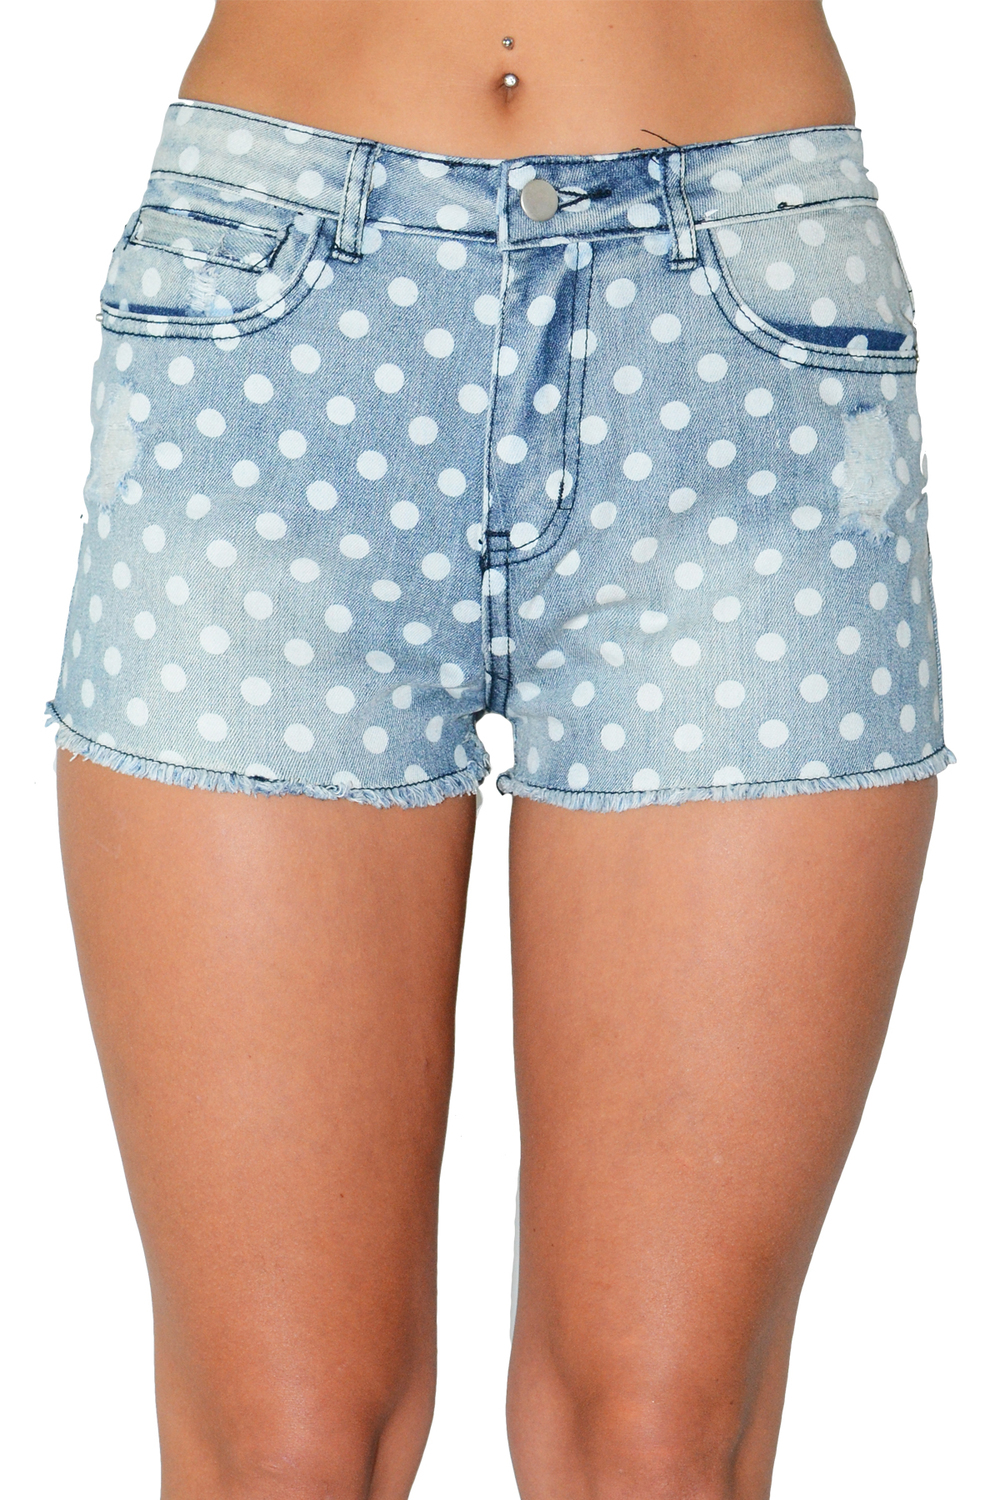 On the dot shorts